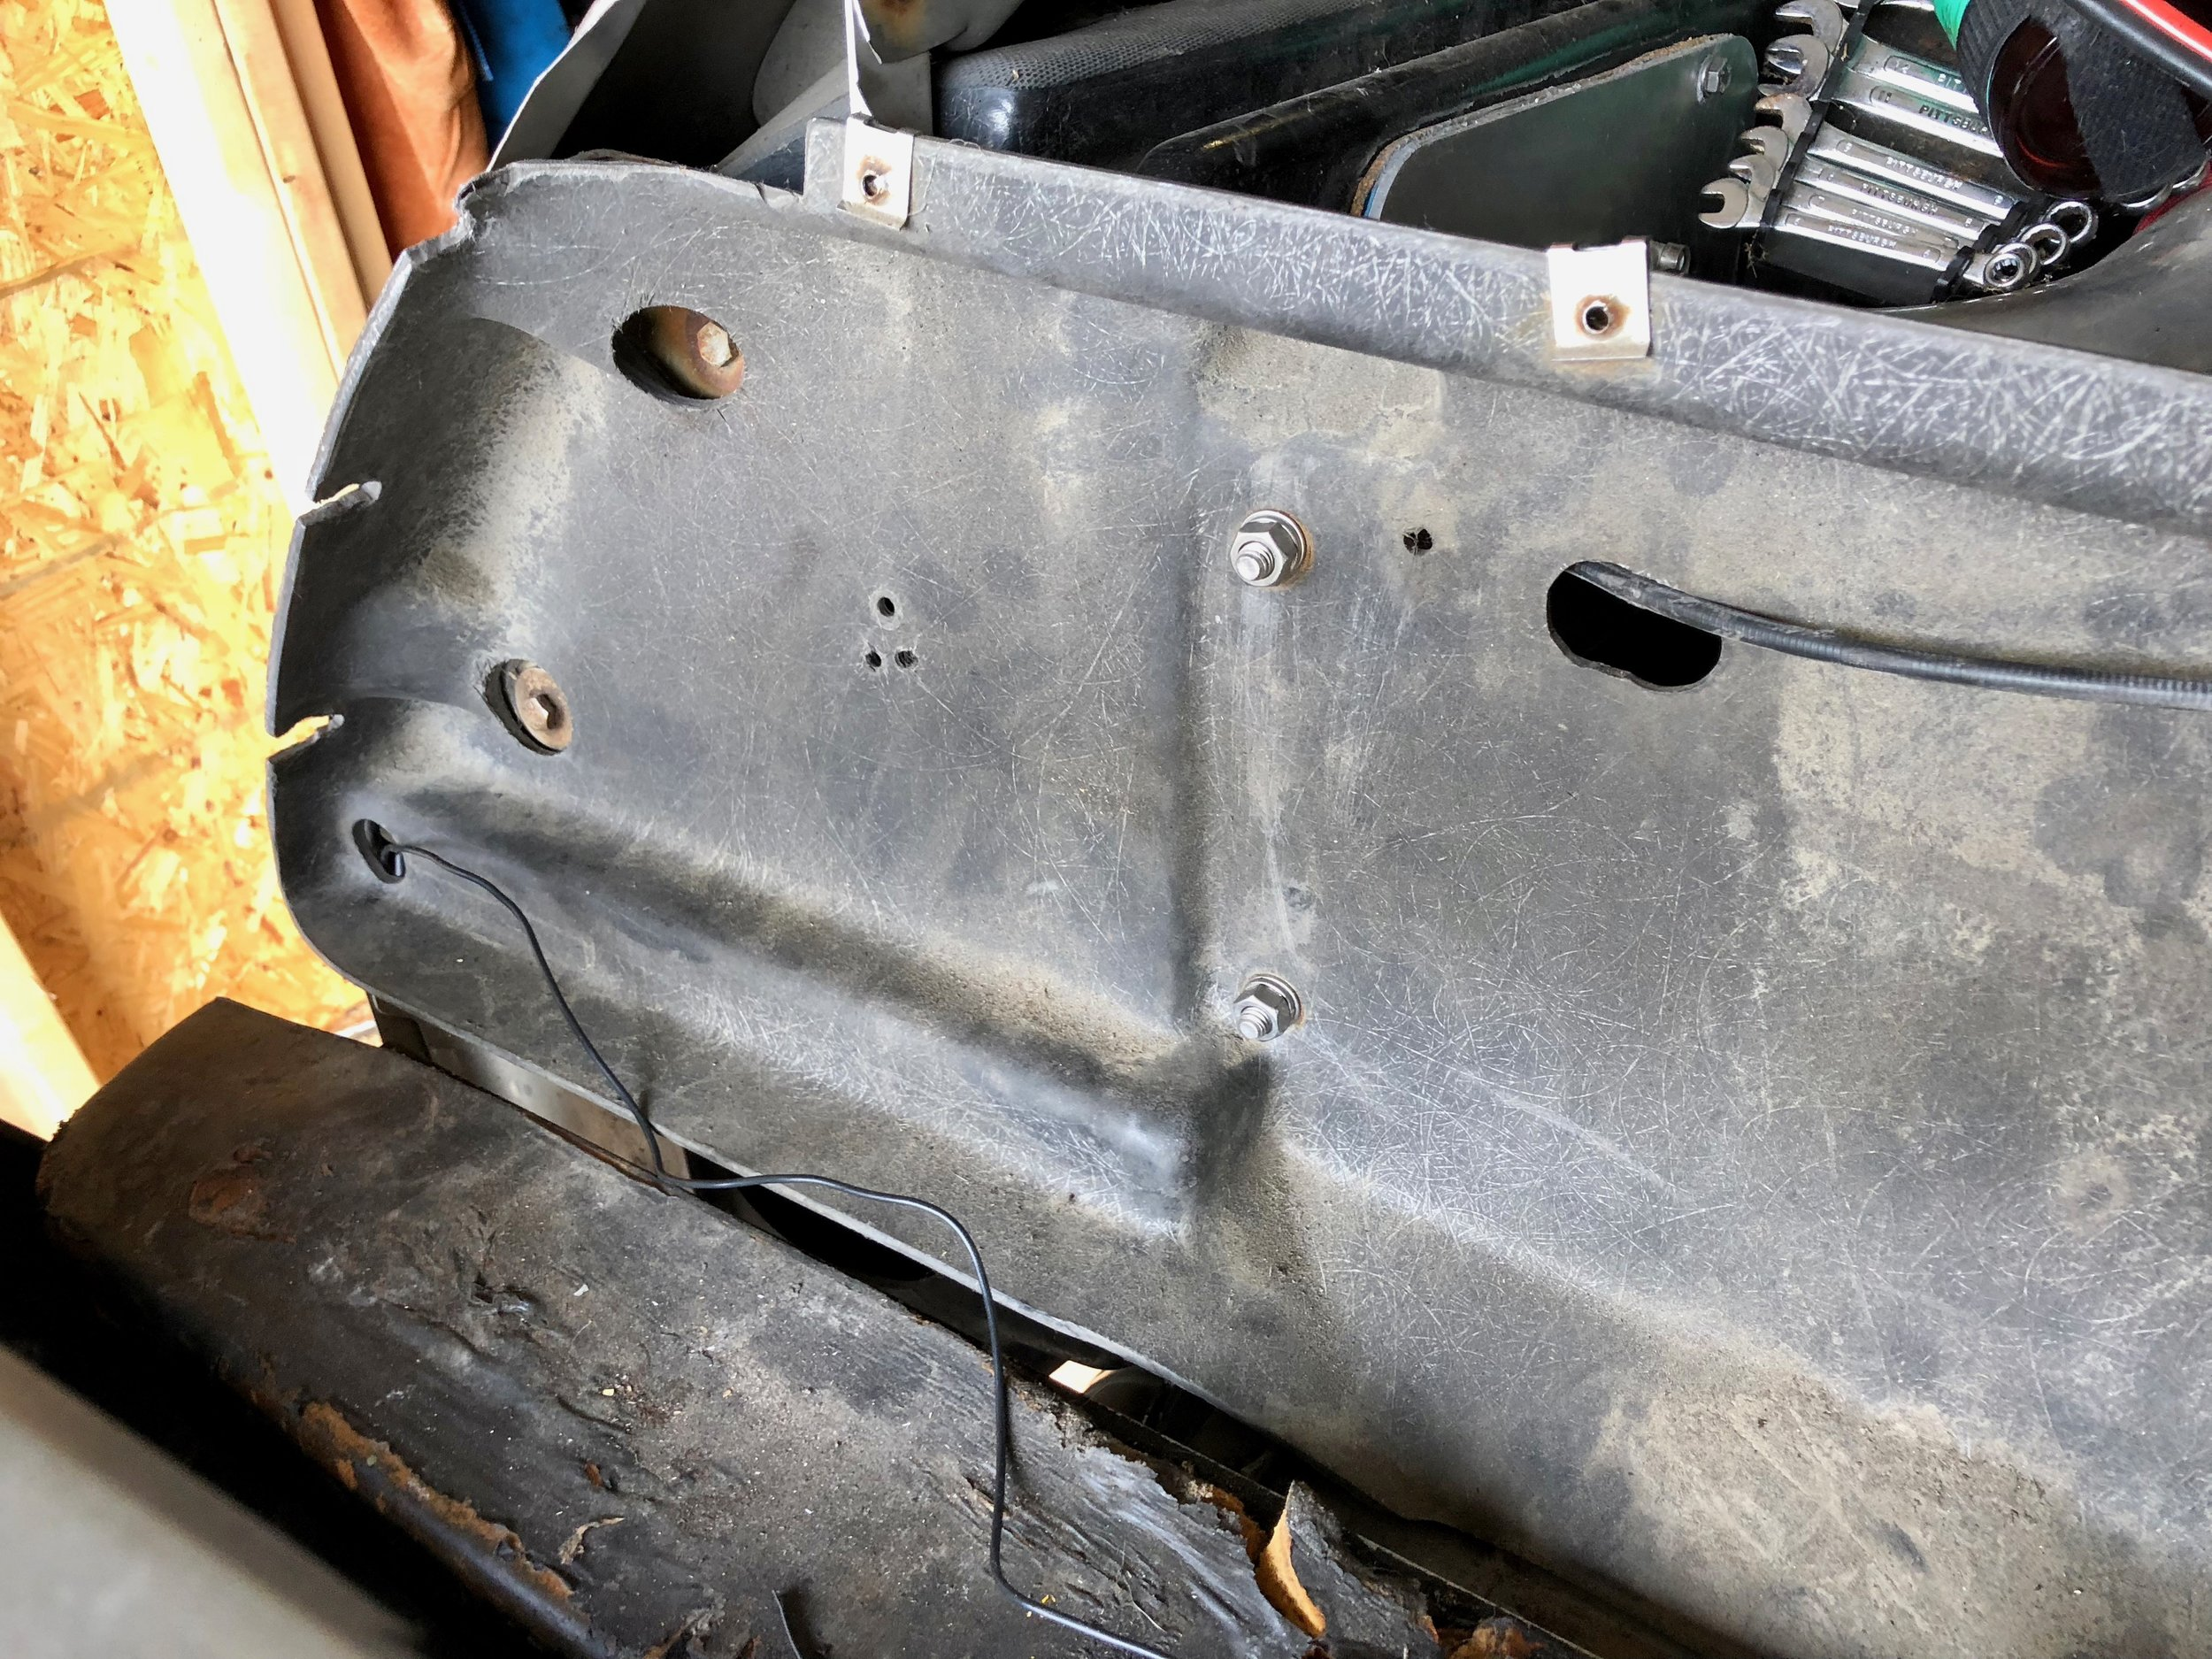 The two nuts and the threads of the bolts that hold the backing to the driver's side can be seen in the center of the picture.  The cluster of three holes is where one screw goes through the backing into the fiberglass.  The cable on the right is for the engine cover latch.